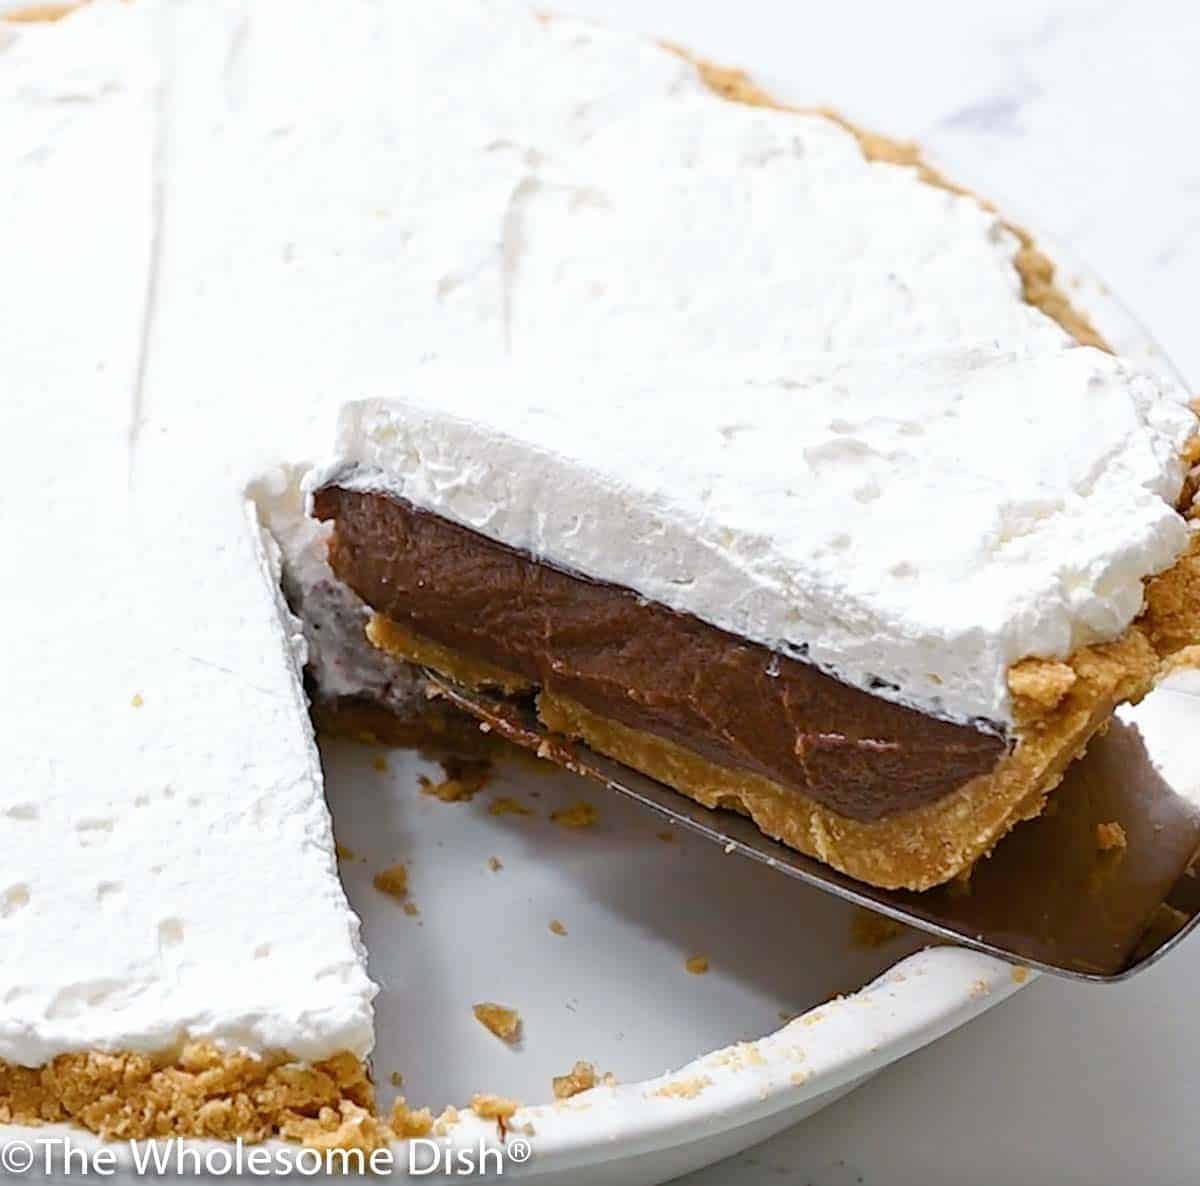 a slice of chocolate cream pie being lifted out of the pie plate